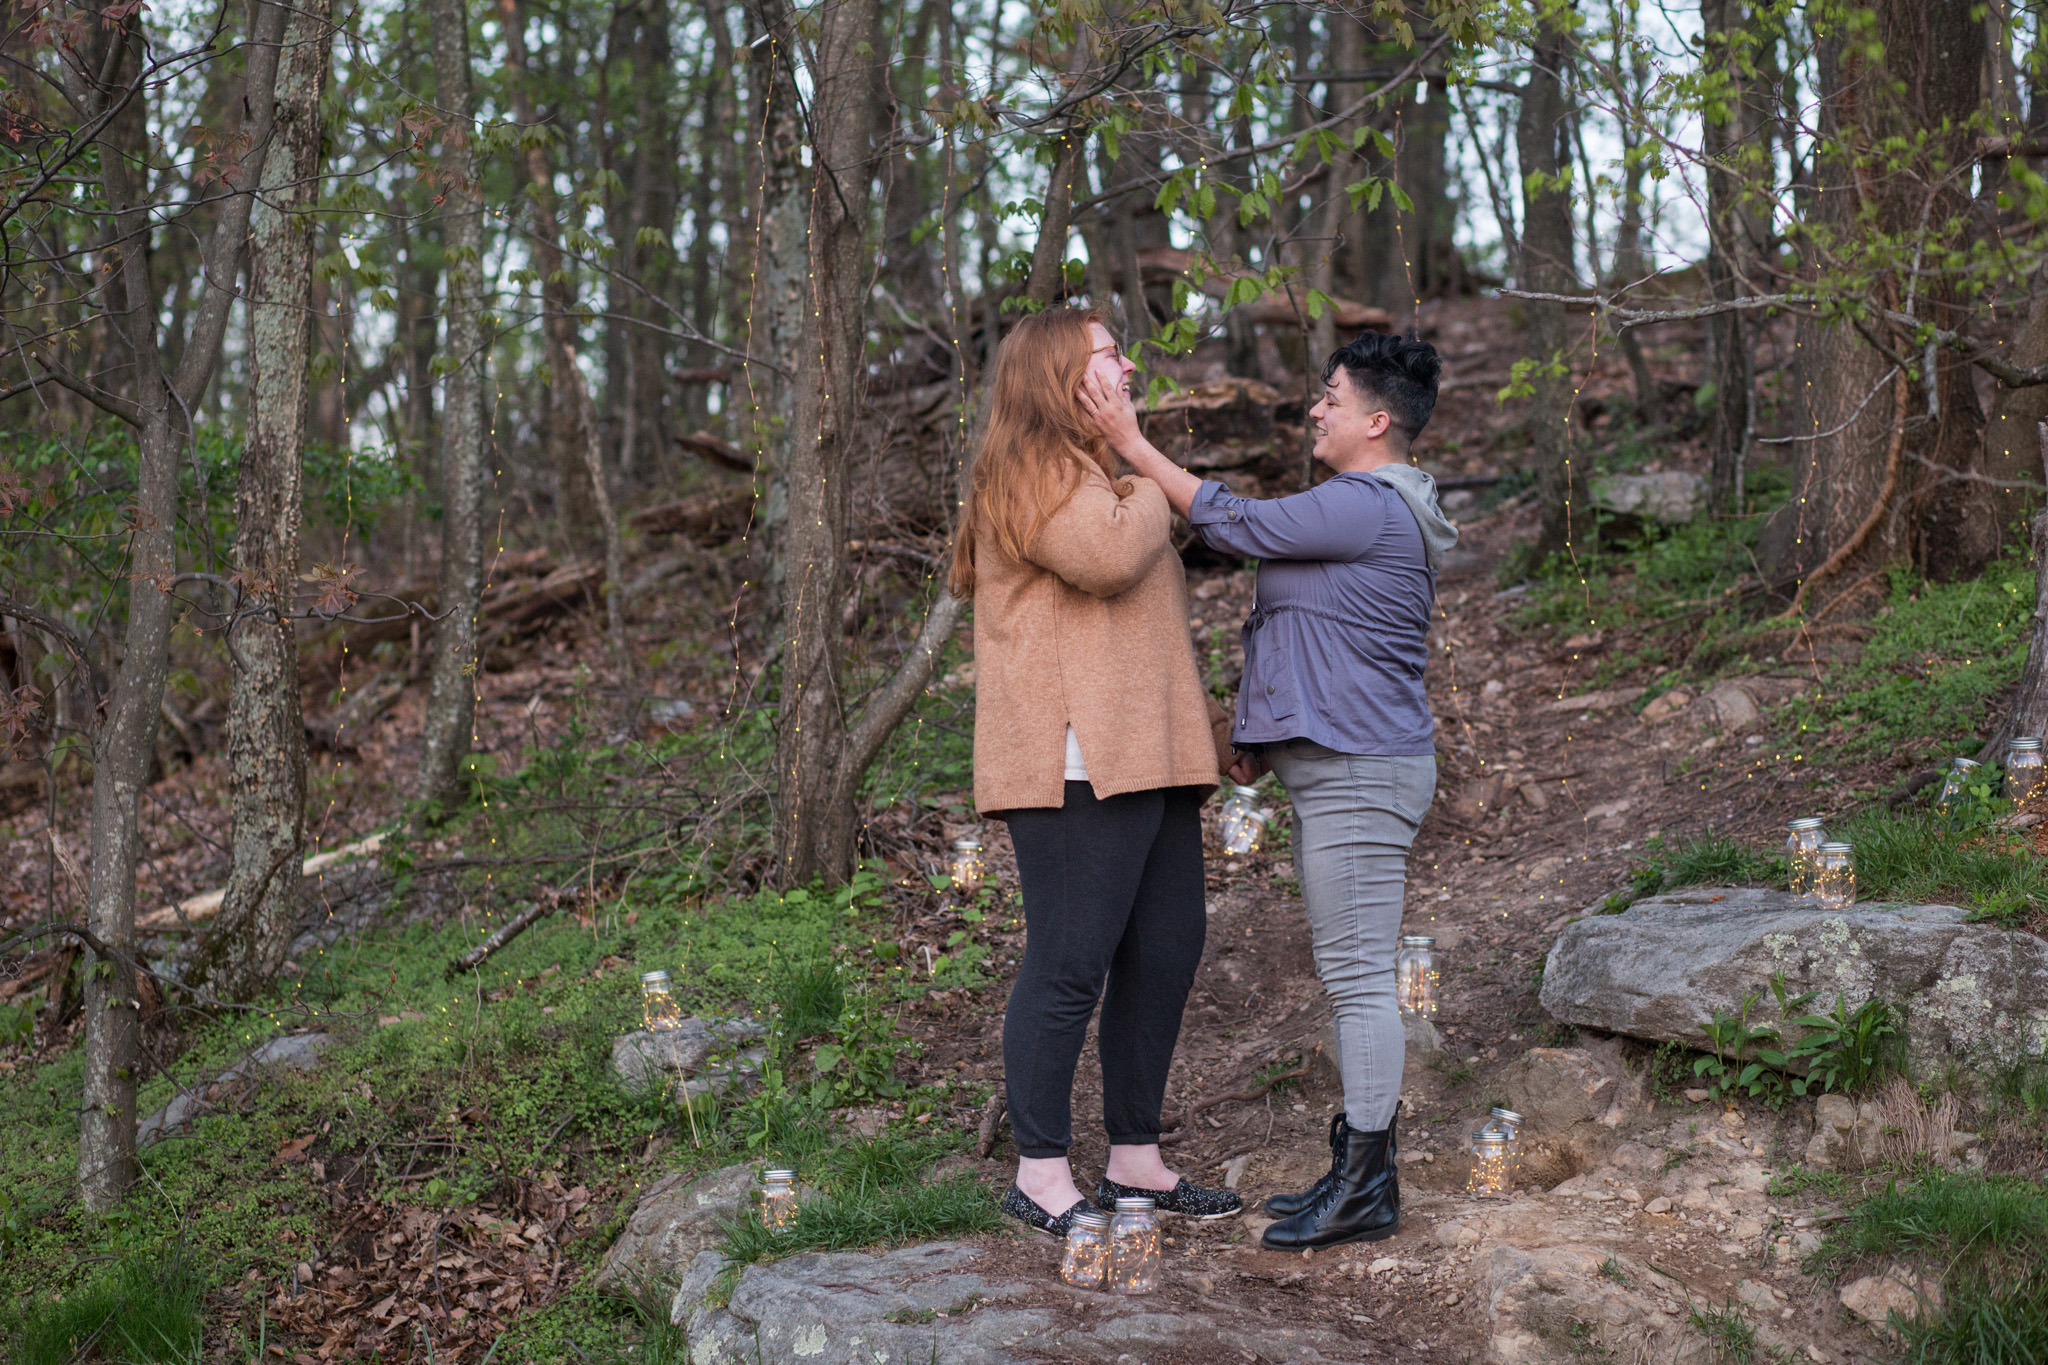 LightCreative_201904_AlexanBecky_Raleigh_Proposal_Photography_016_blog.jpg